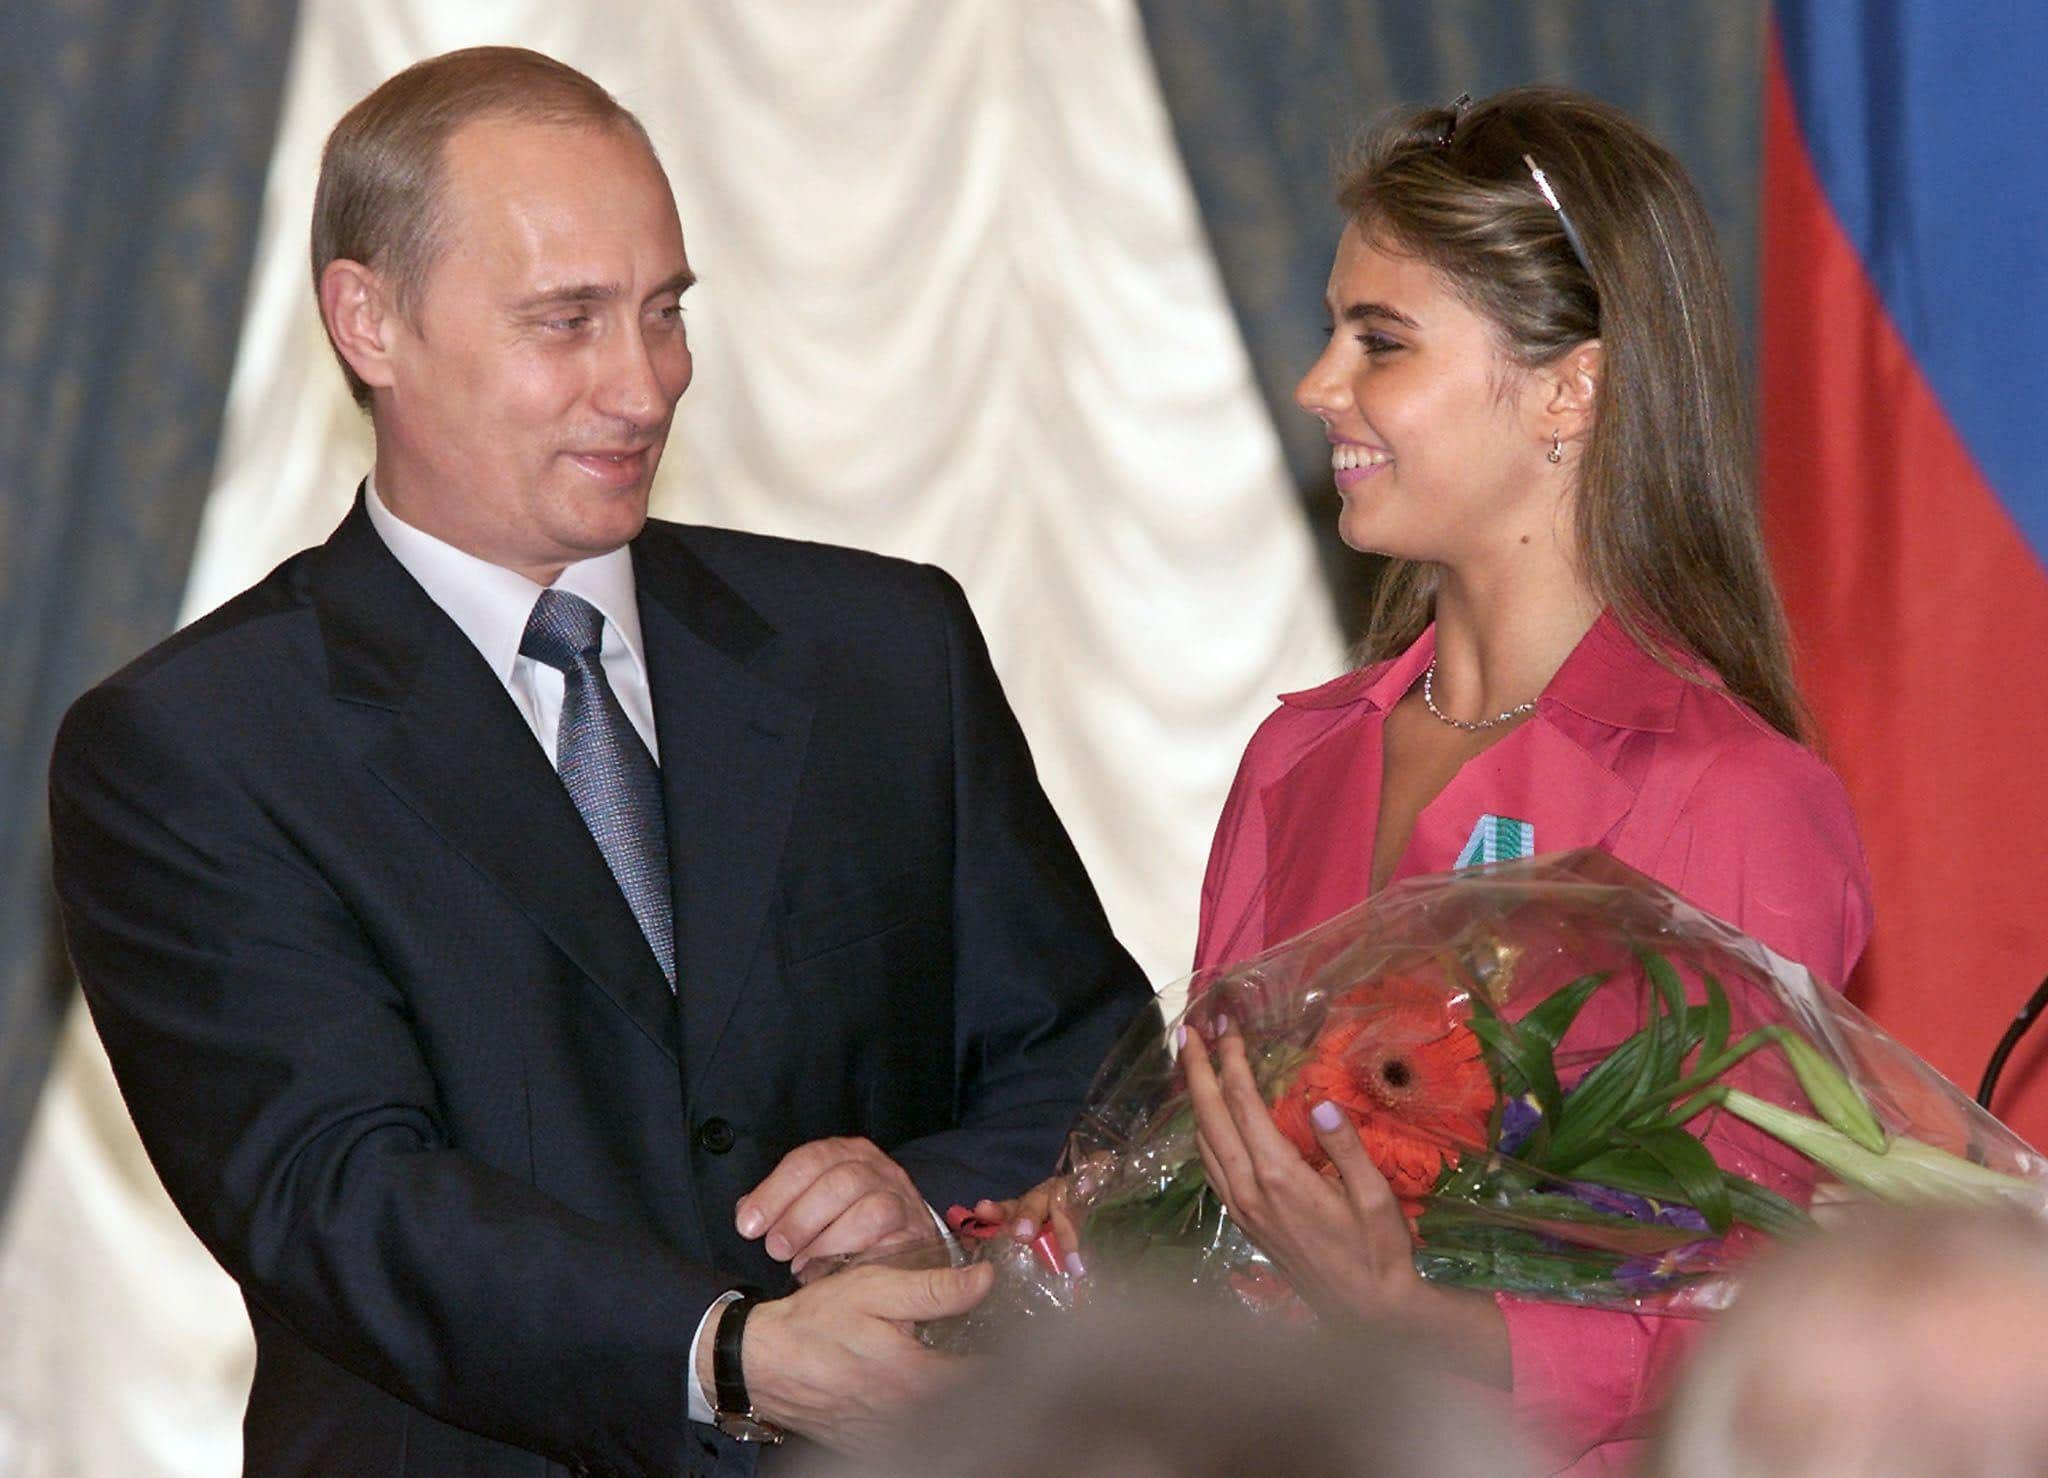 Vladmir Putin 66 Admits He Will Soon Marry His 35 Year Old Longtime Girlfriend Meaww